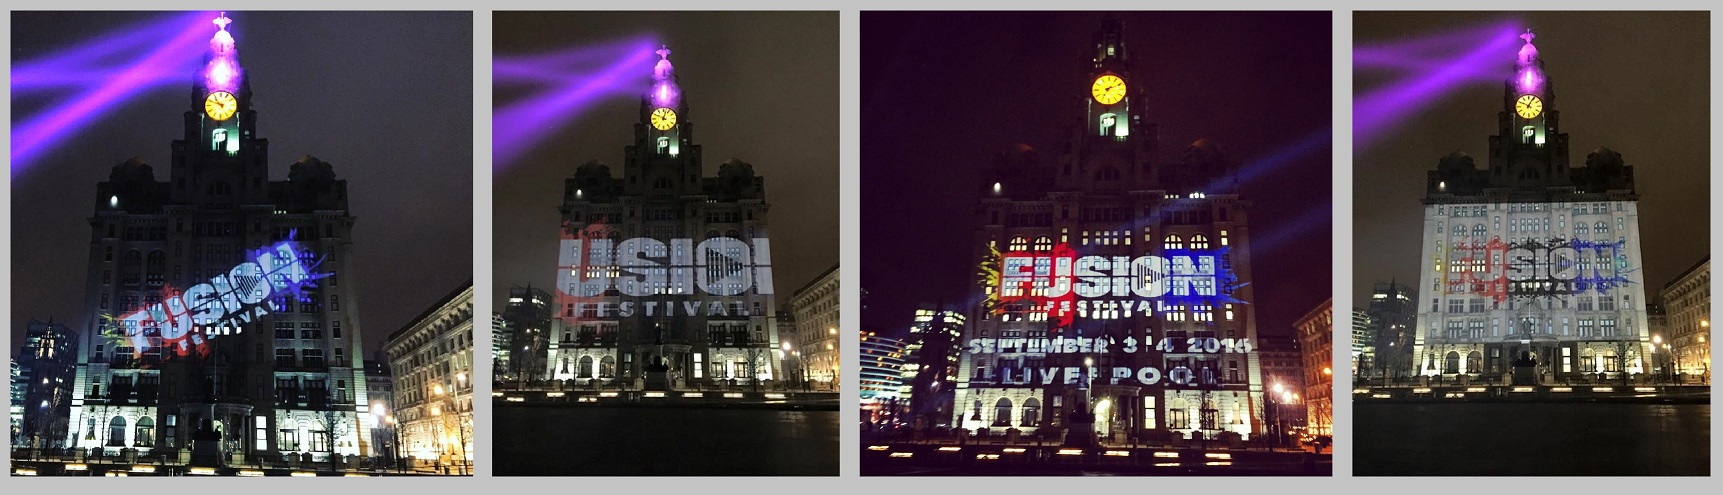 FUSION FESTIVAL PROJECTION LIVER BUILDING